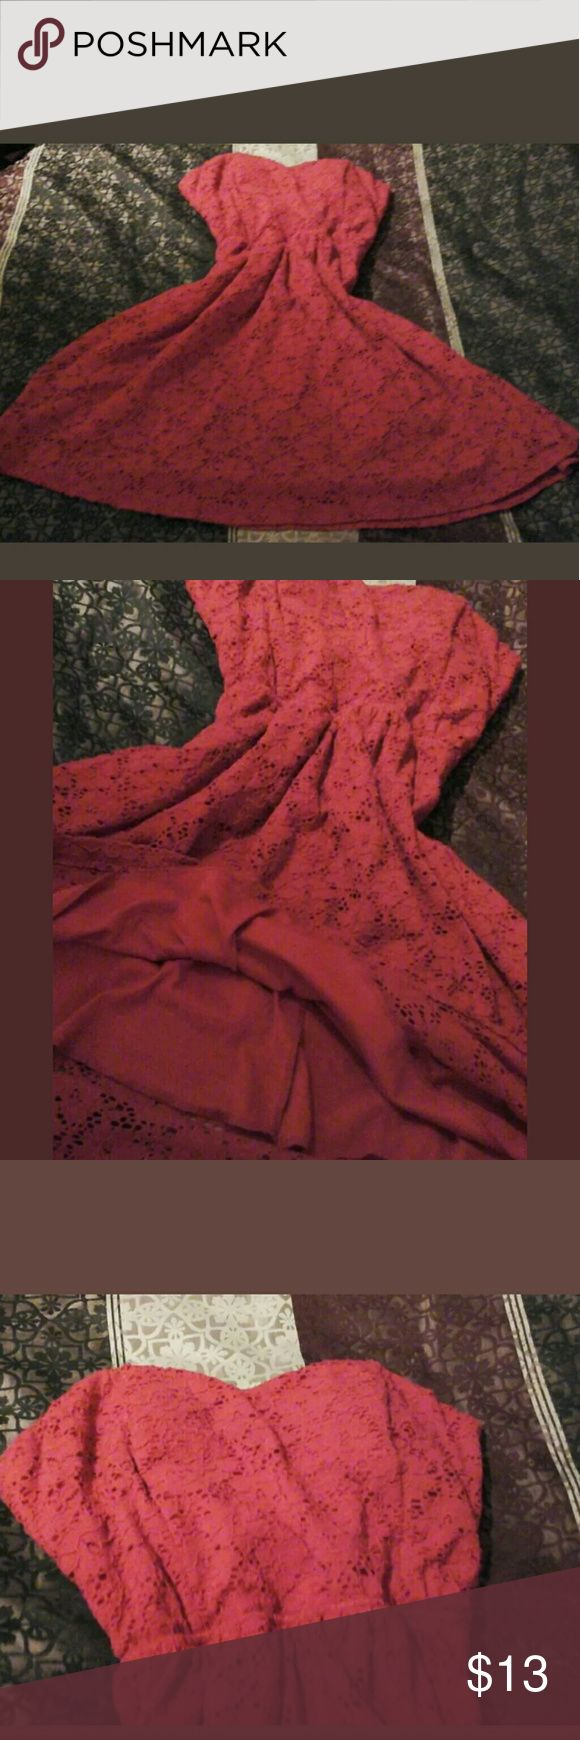 Guess dress large lacey red with built in slip Guess dress large lacey red with built in slip guess Dresses Mini